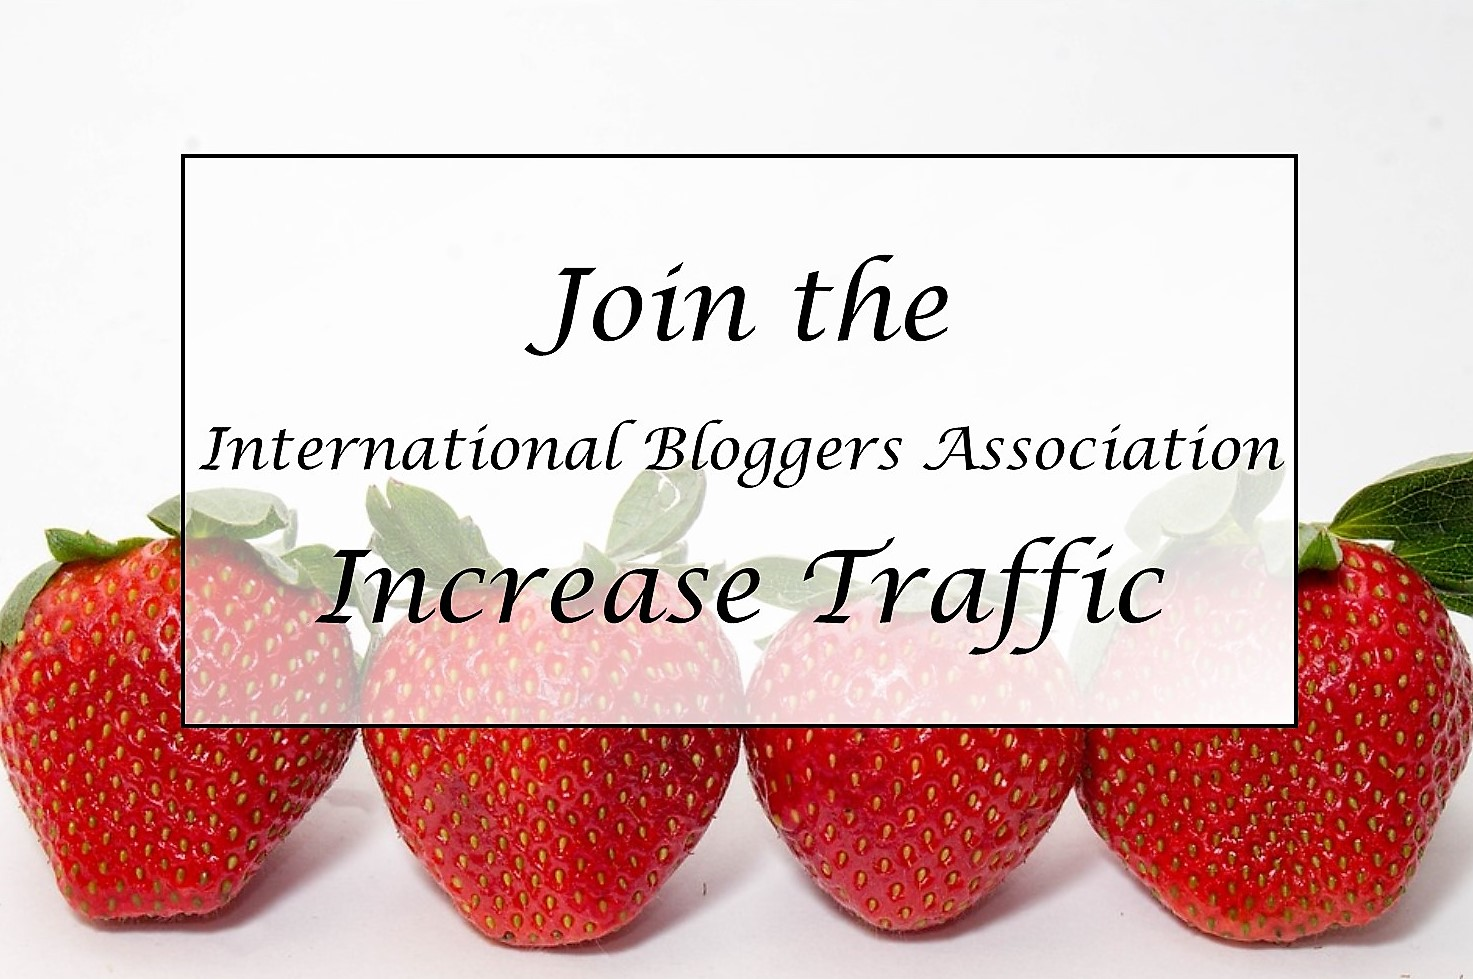 Join the International Bloggers Association